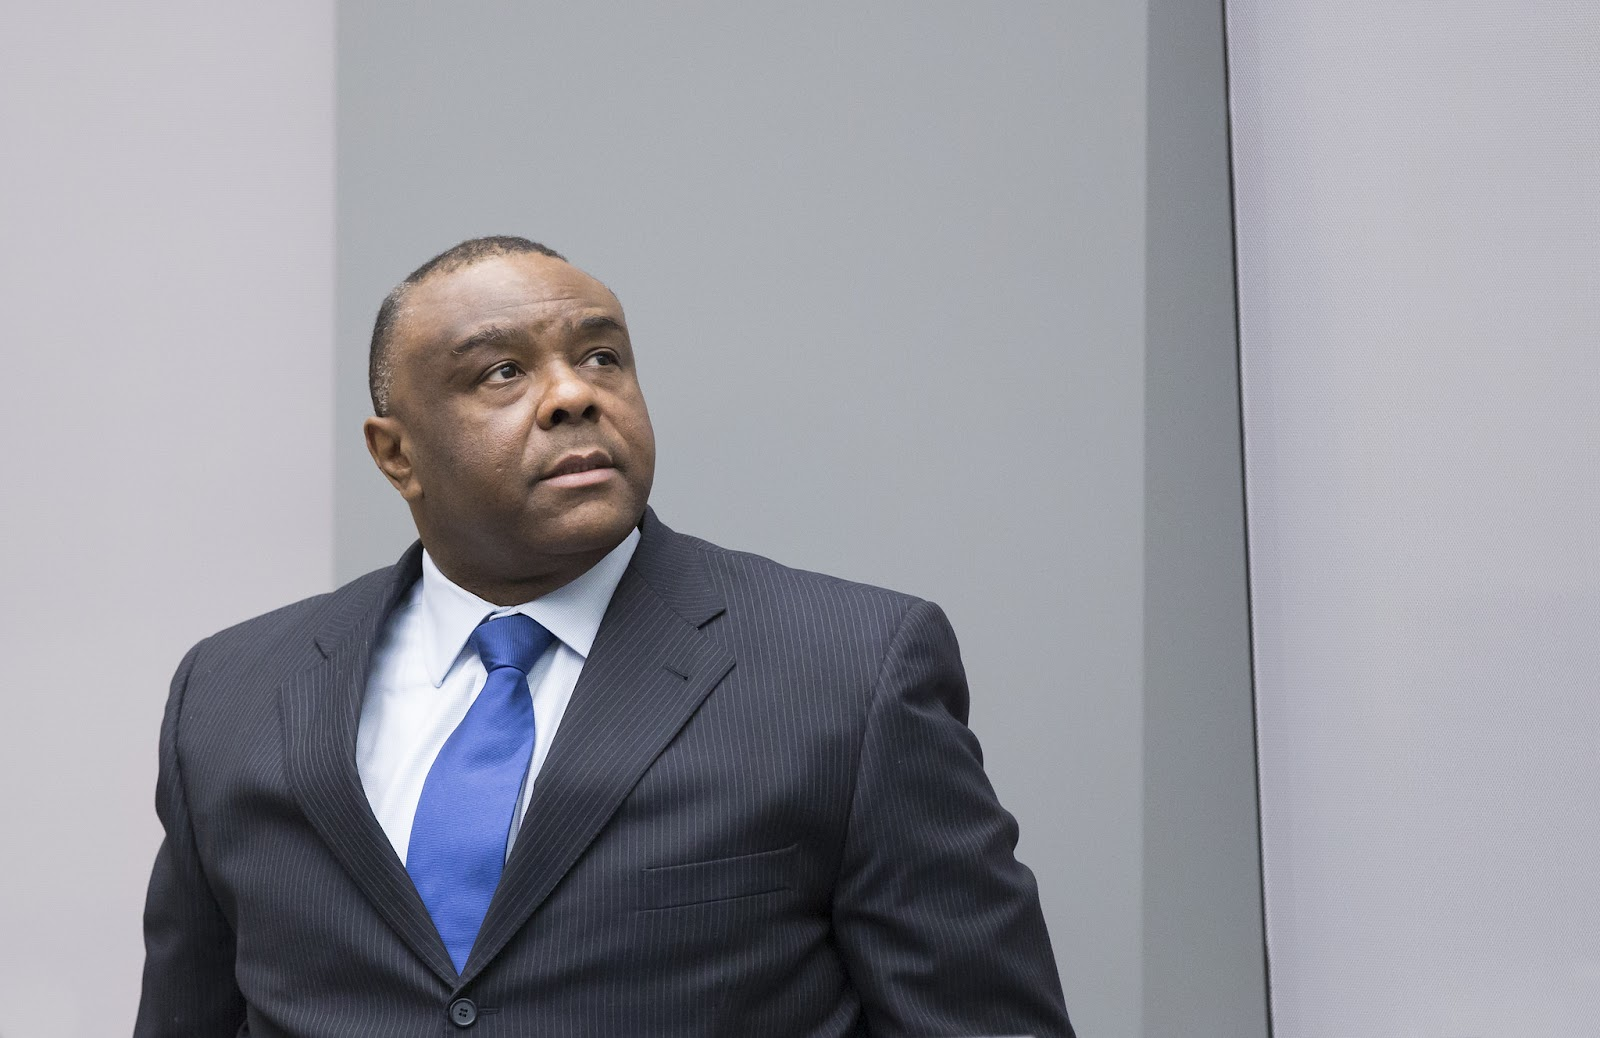 Jean-Pierre Bemba at his sentencing hearing. Credit: ICC-CPI.